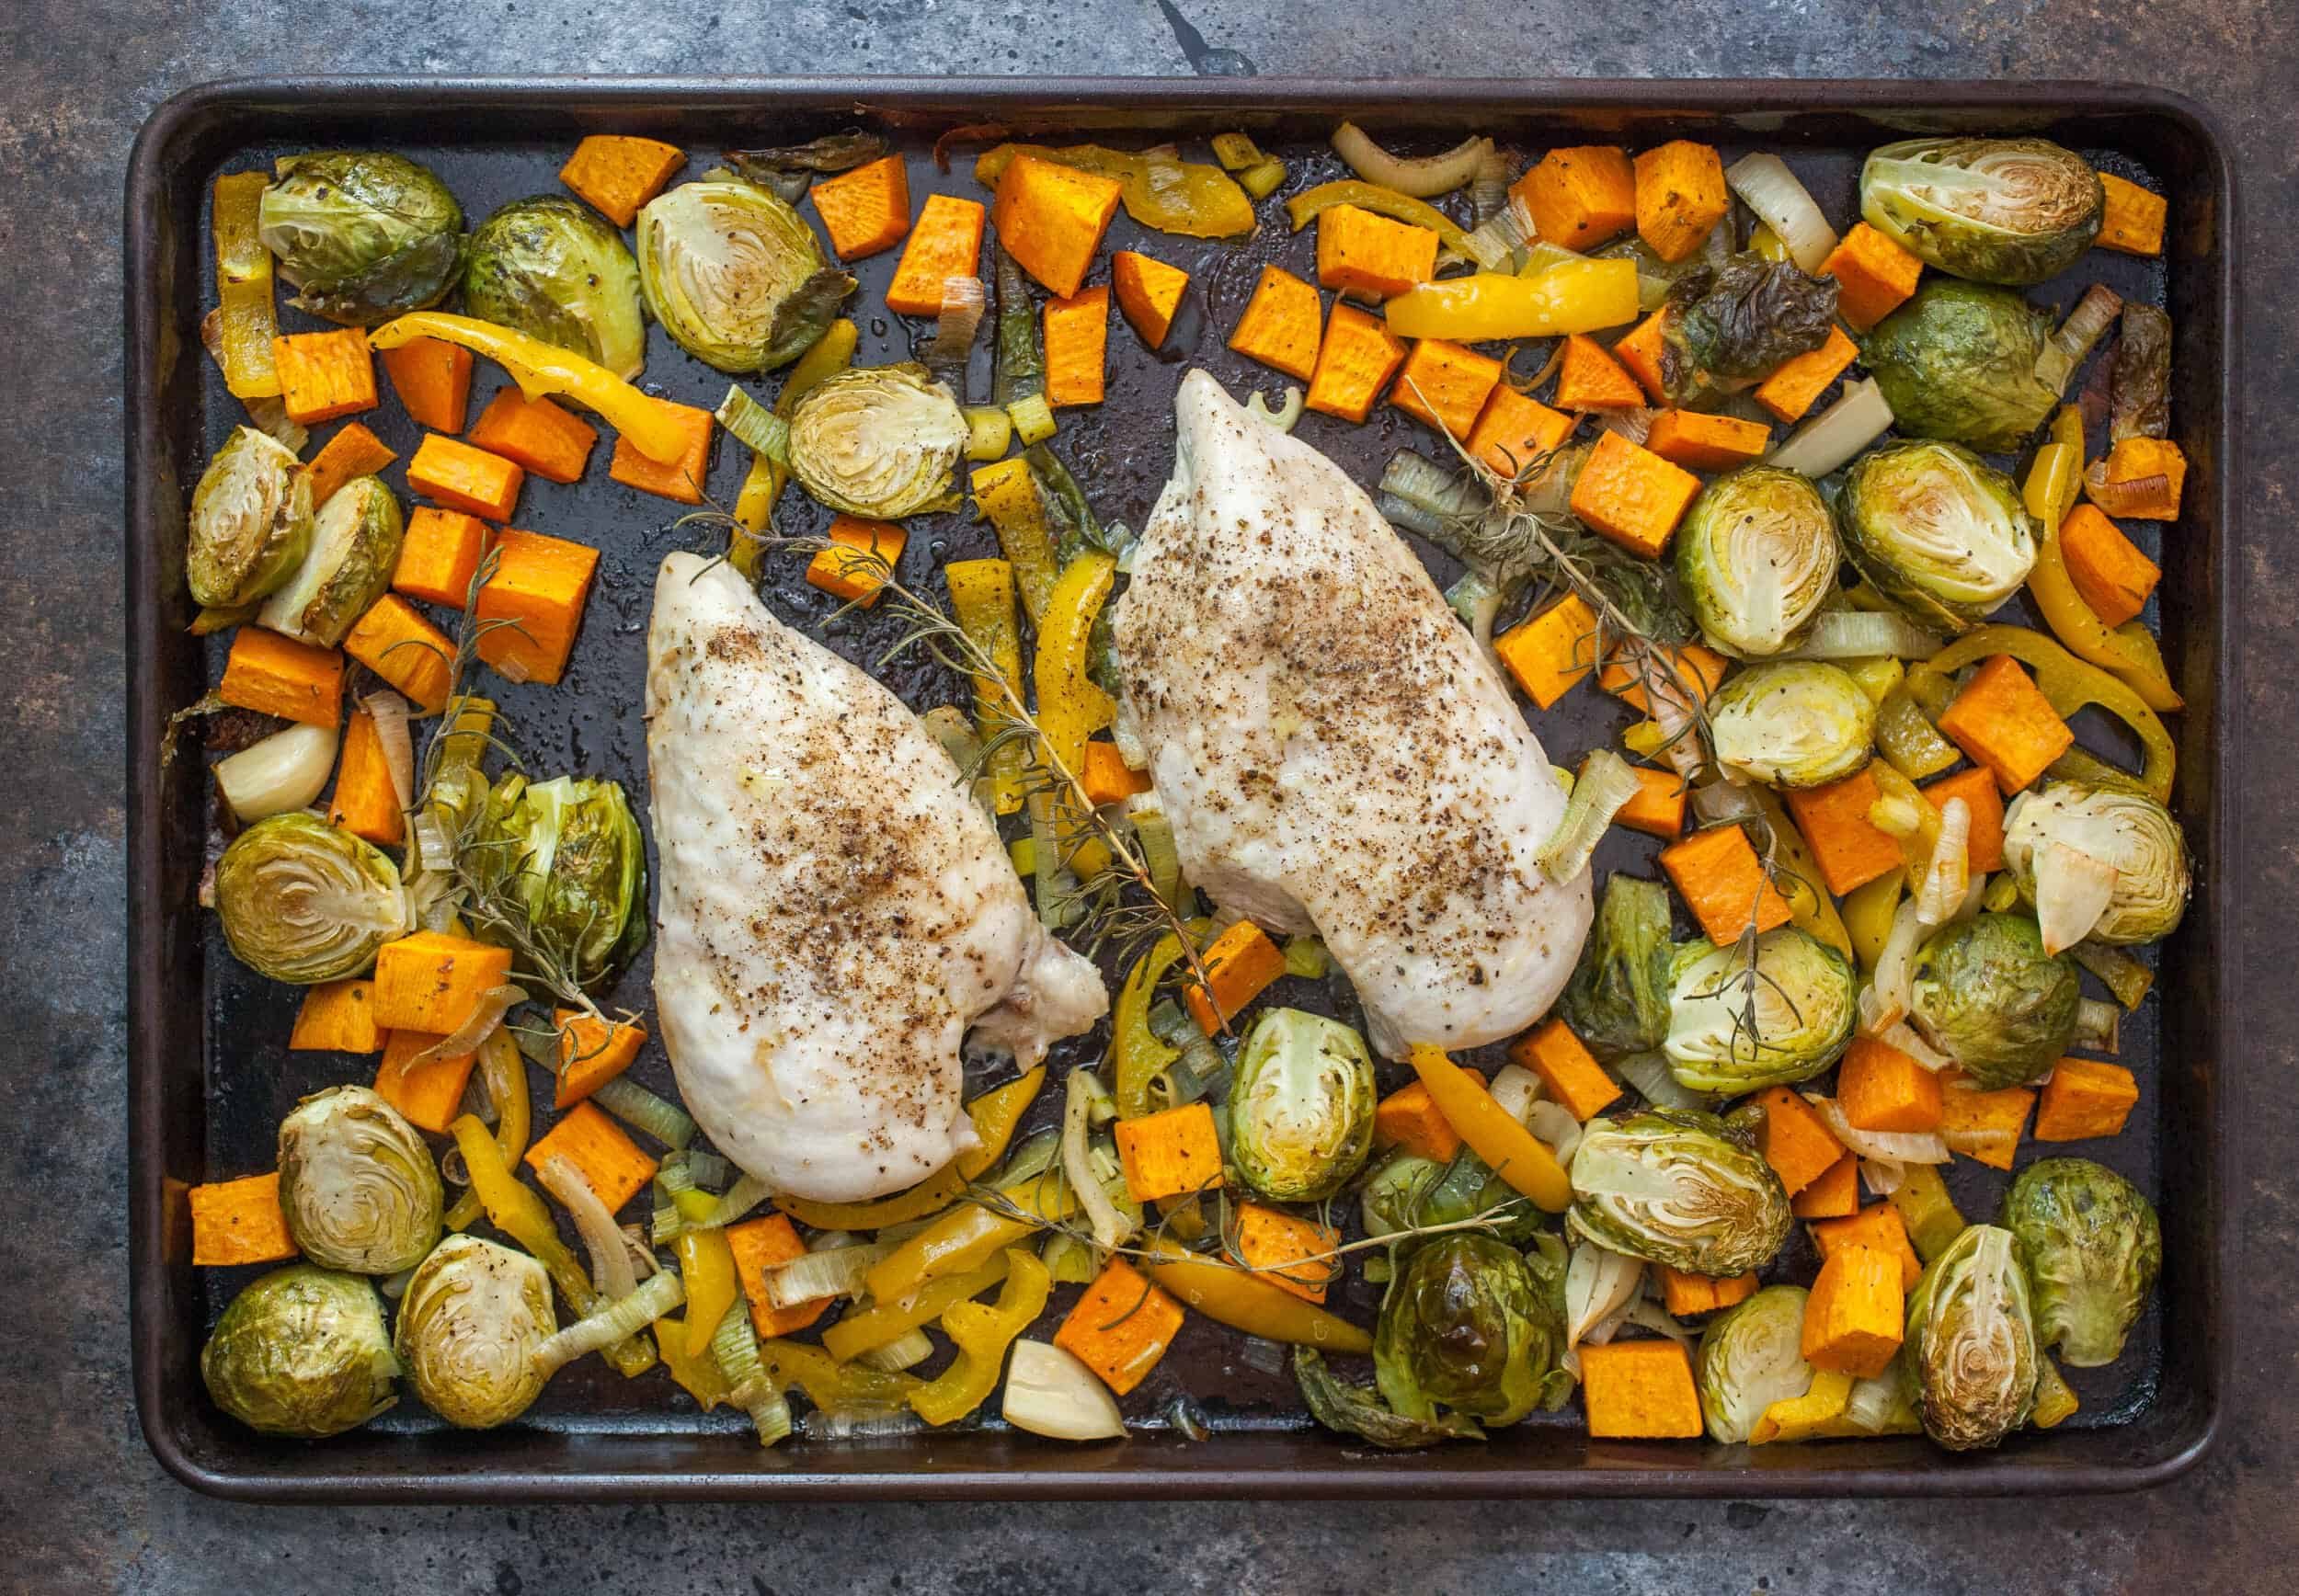 Fall Veggie Chicken Sheet Pan Dinner: This is a great recipe to bring some fall flavors into your dinner routine. Easy to make and everything cooks at once! | macheesmo.com